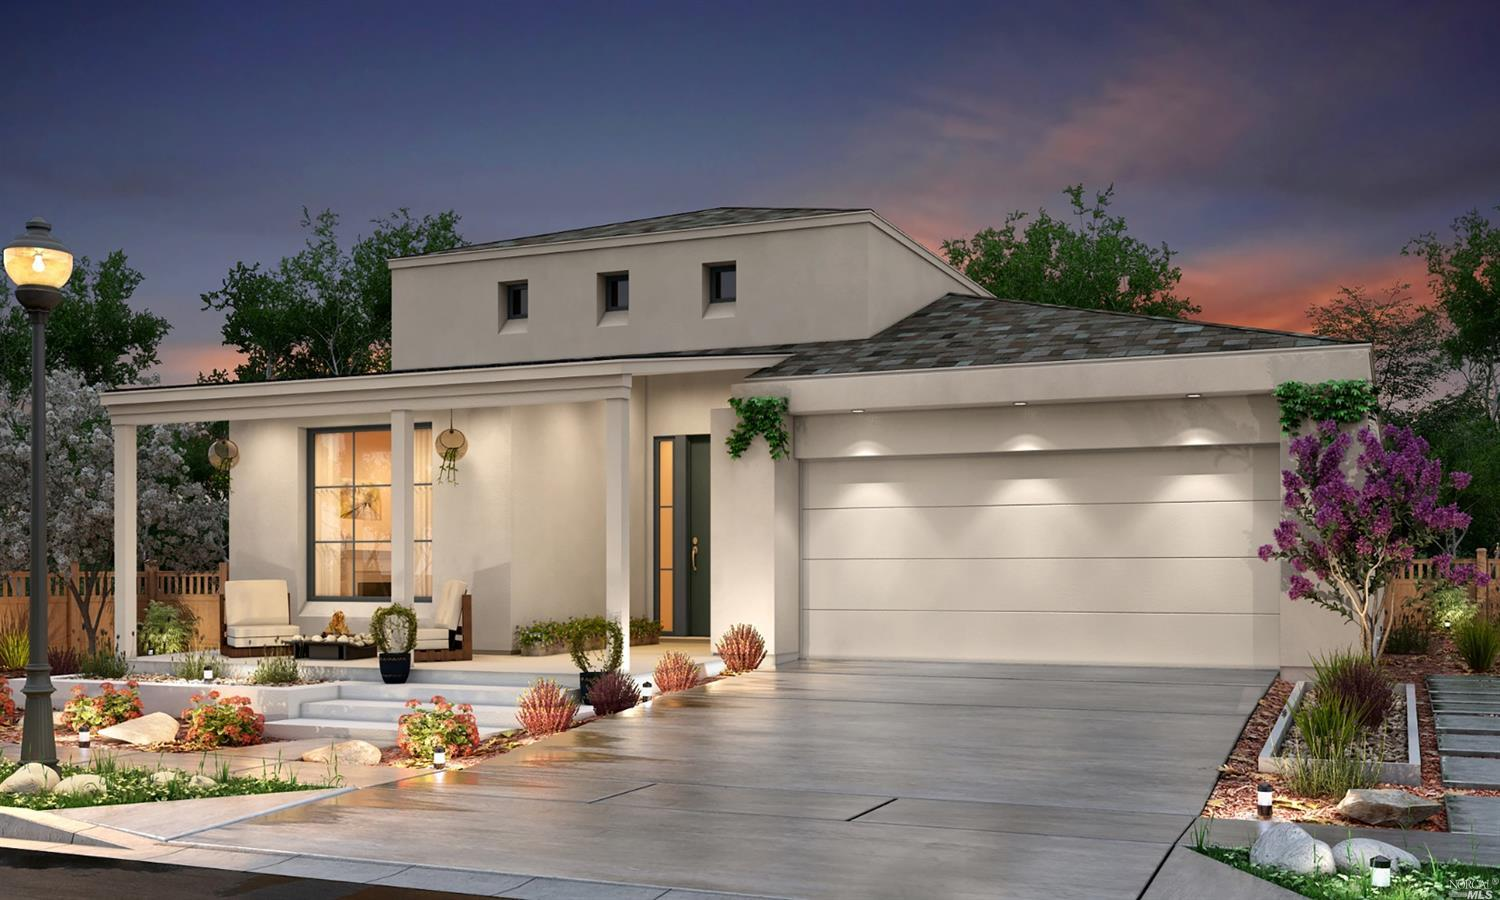 Brand New Homes in Windsor!! Home Three's fluid living space is perfect for avid entertainers and bu